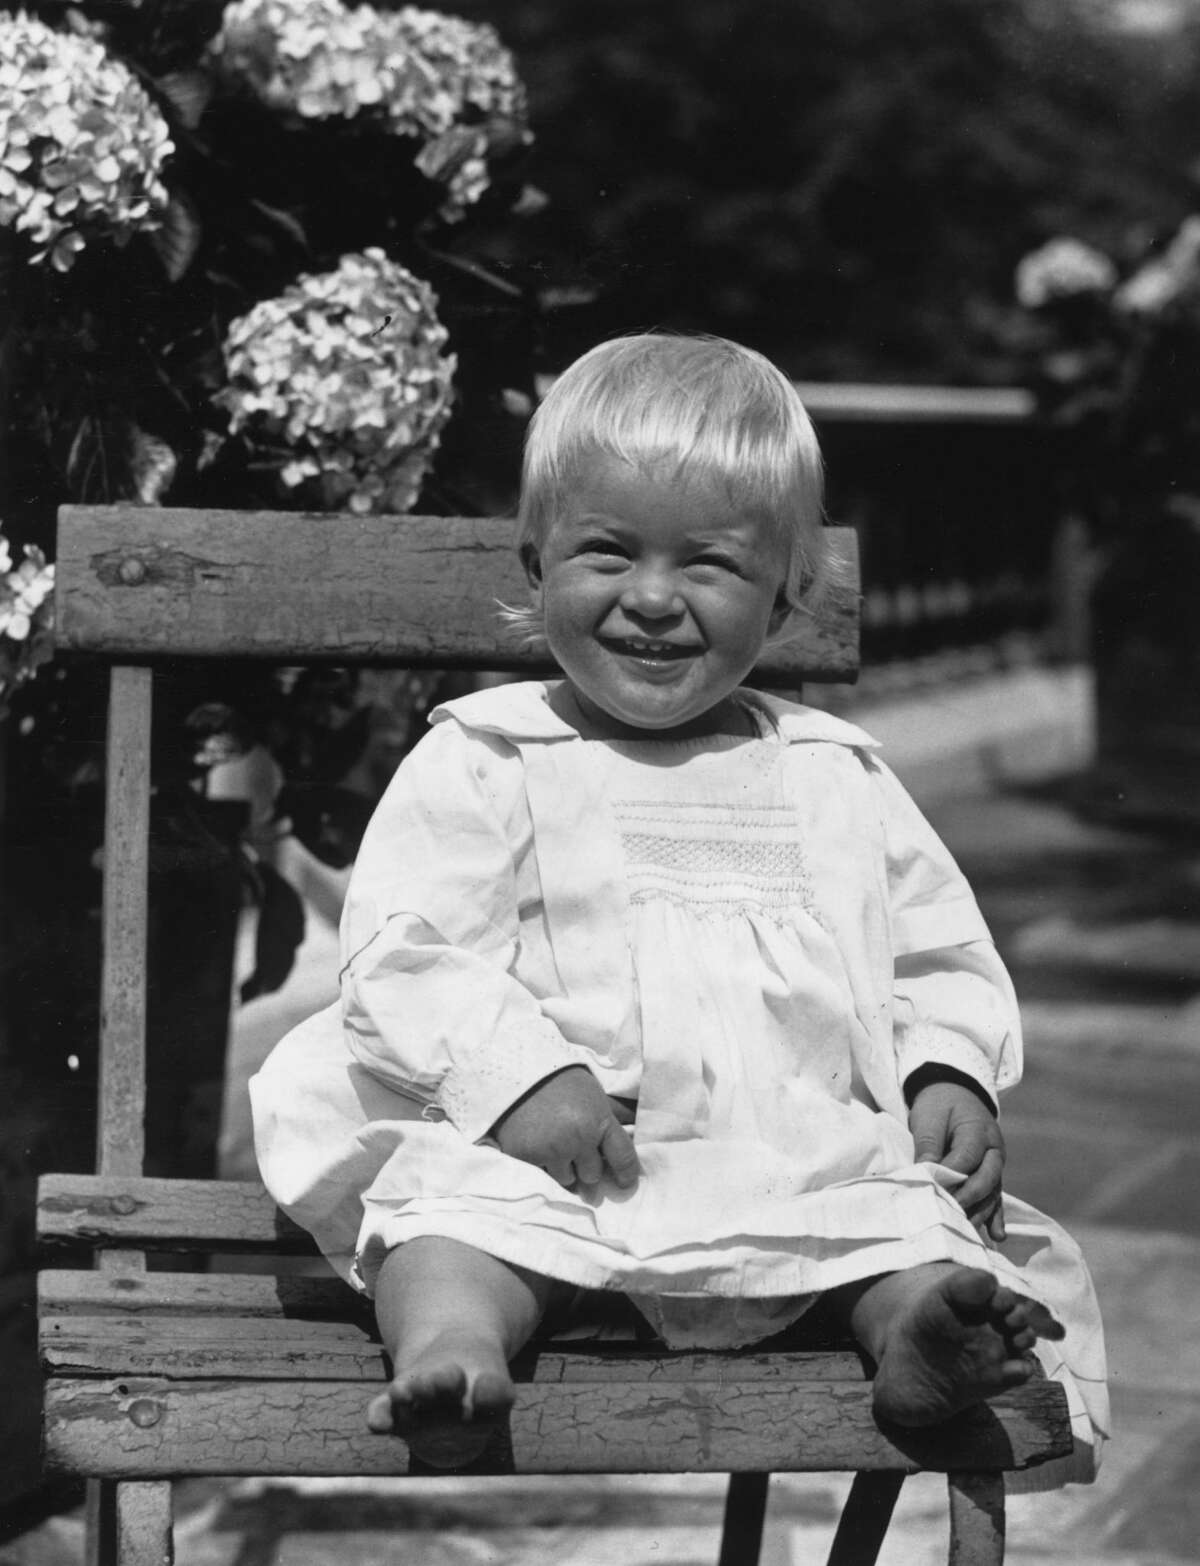 Prince Philip of Greece, later Duke of Edinburgh, as a toddler, July 1922. (Photo by Hulton Archive/Getty Images)